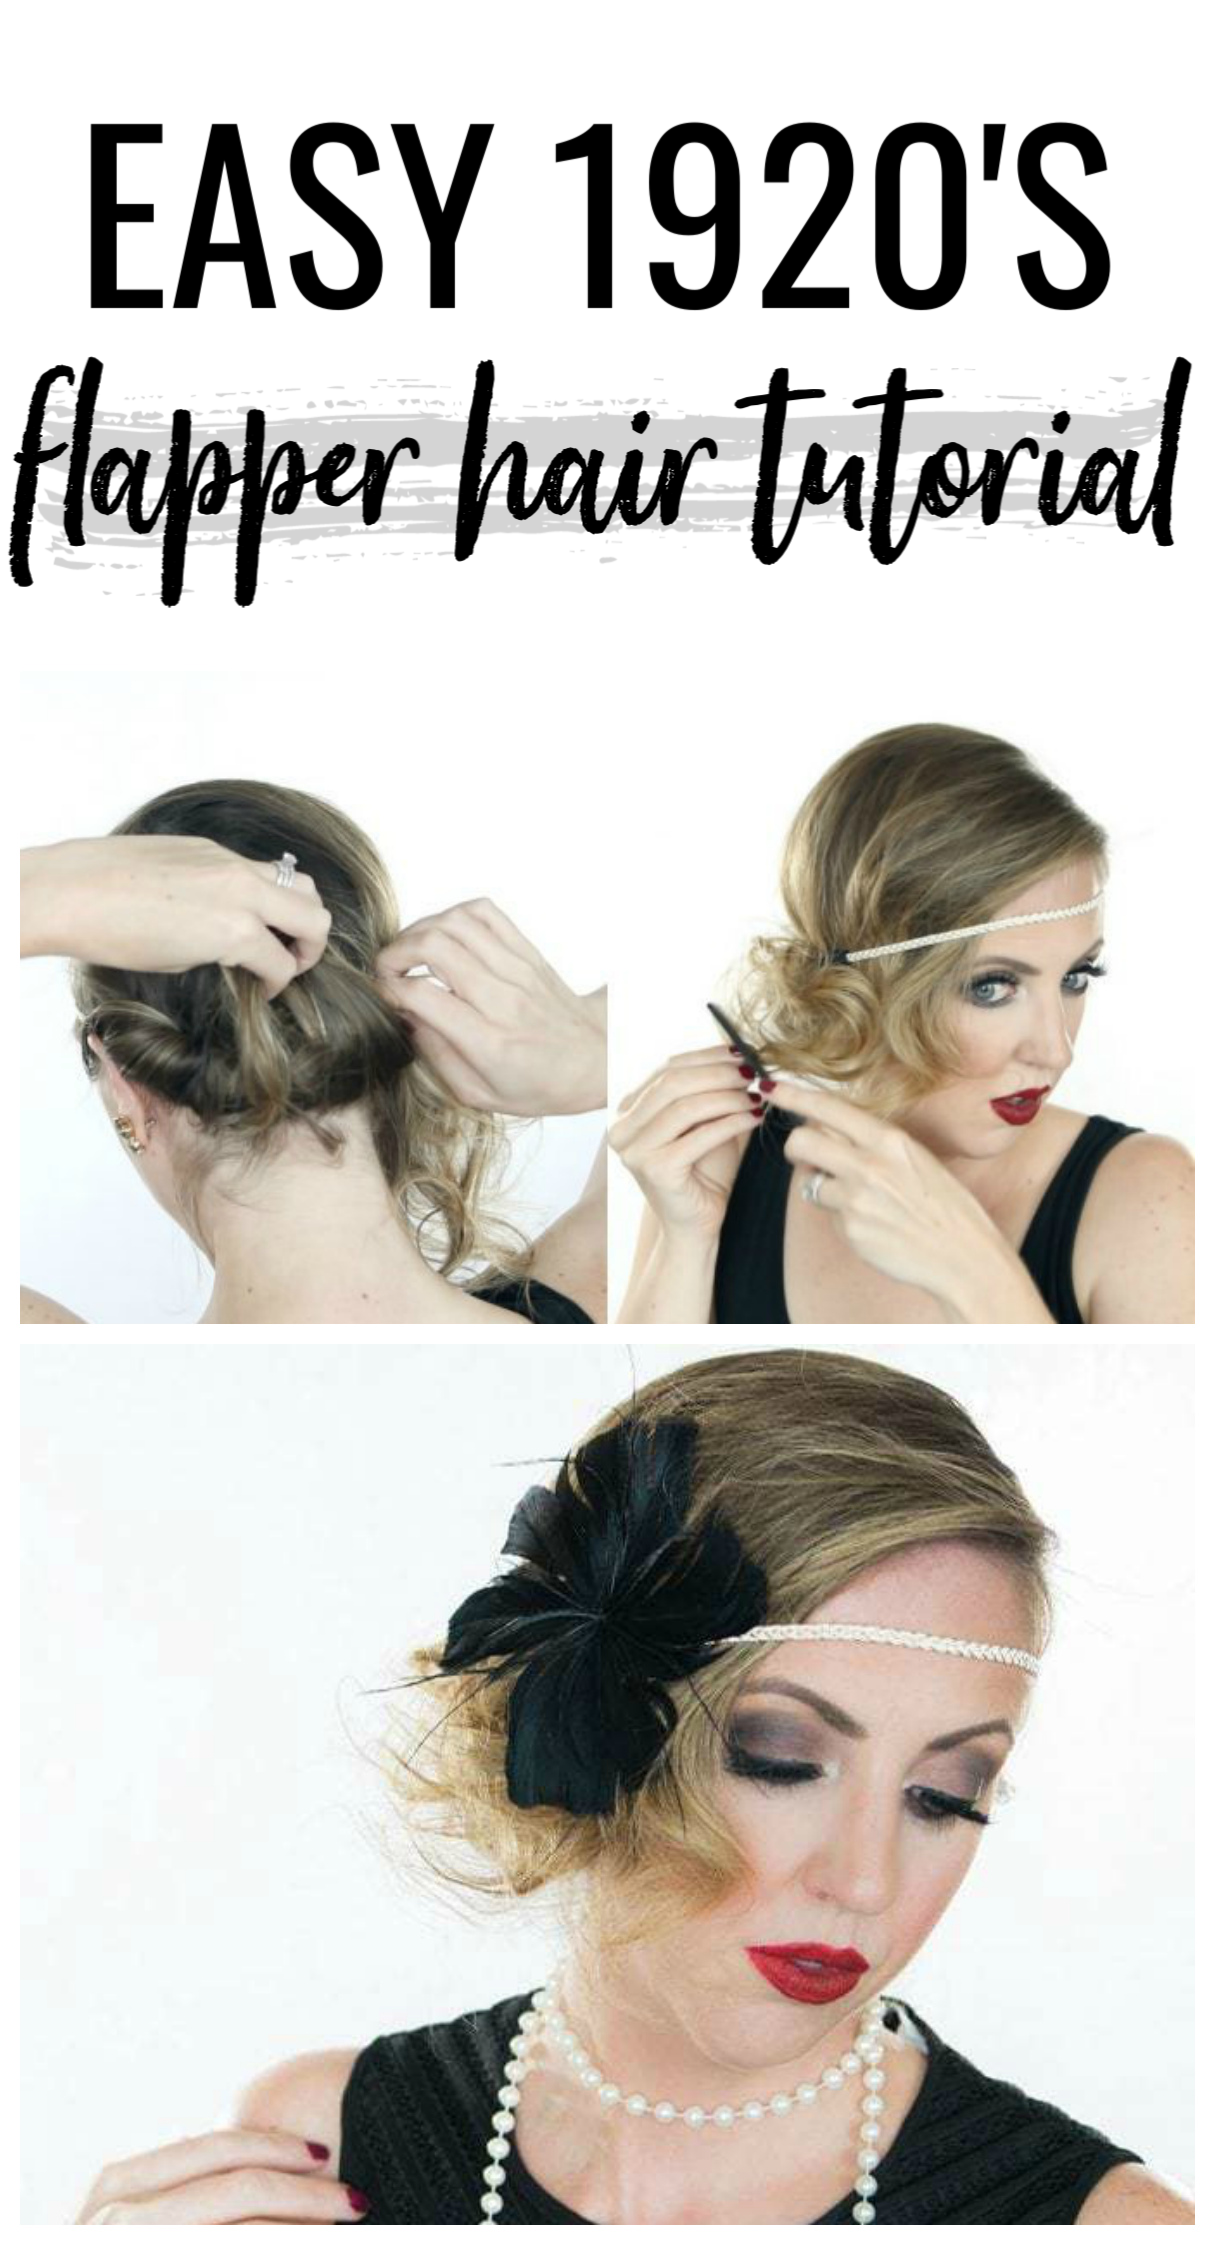 Easy 1920's Flapper Hair Tutorial